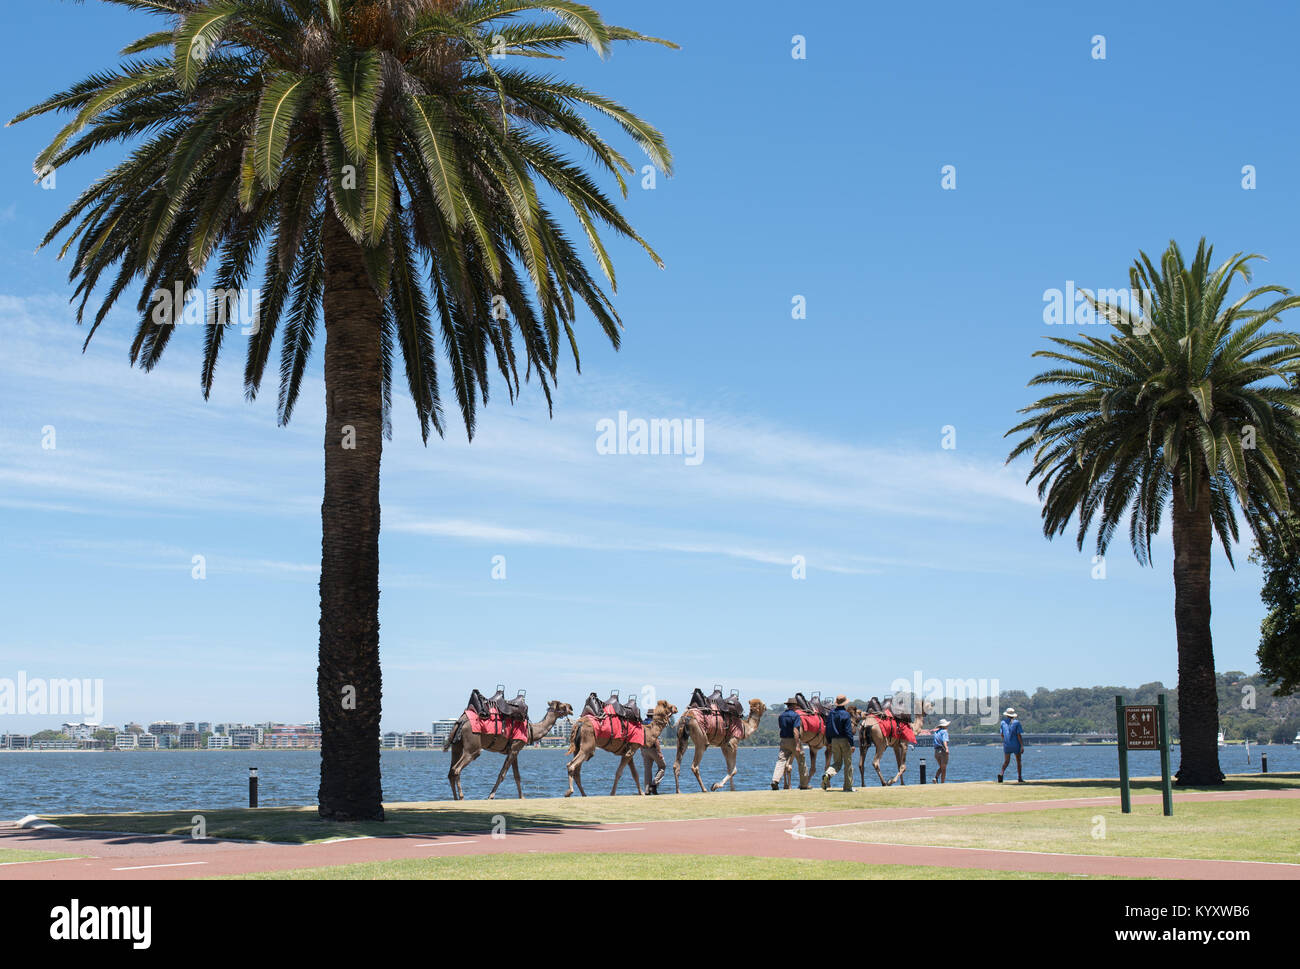 PERTH, Australia, WA / Western Australia - 2017 December 21, Swan River Perth. (Photo by Ulrich Roth / www.ulrich - Stock Image